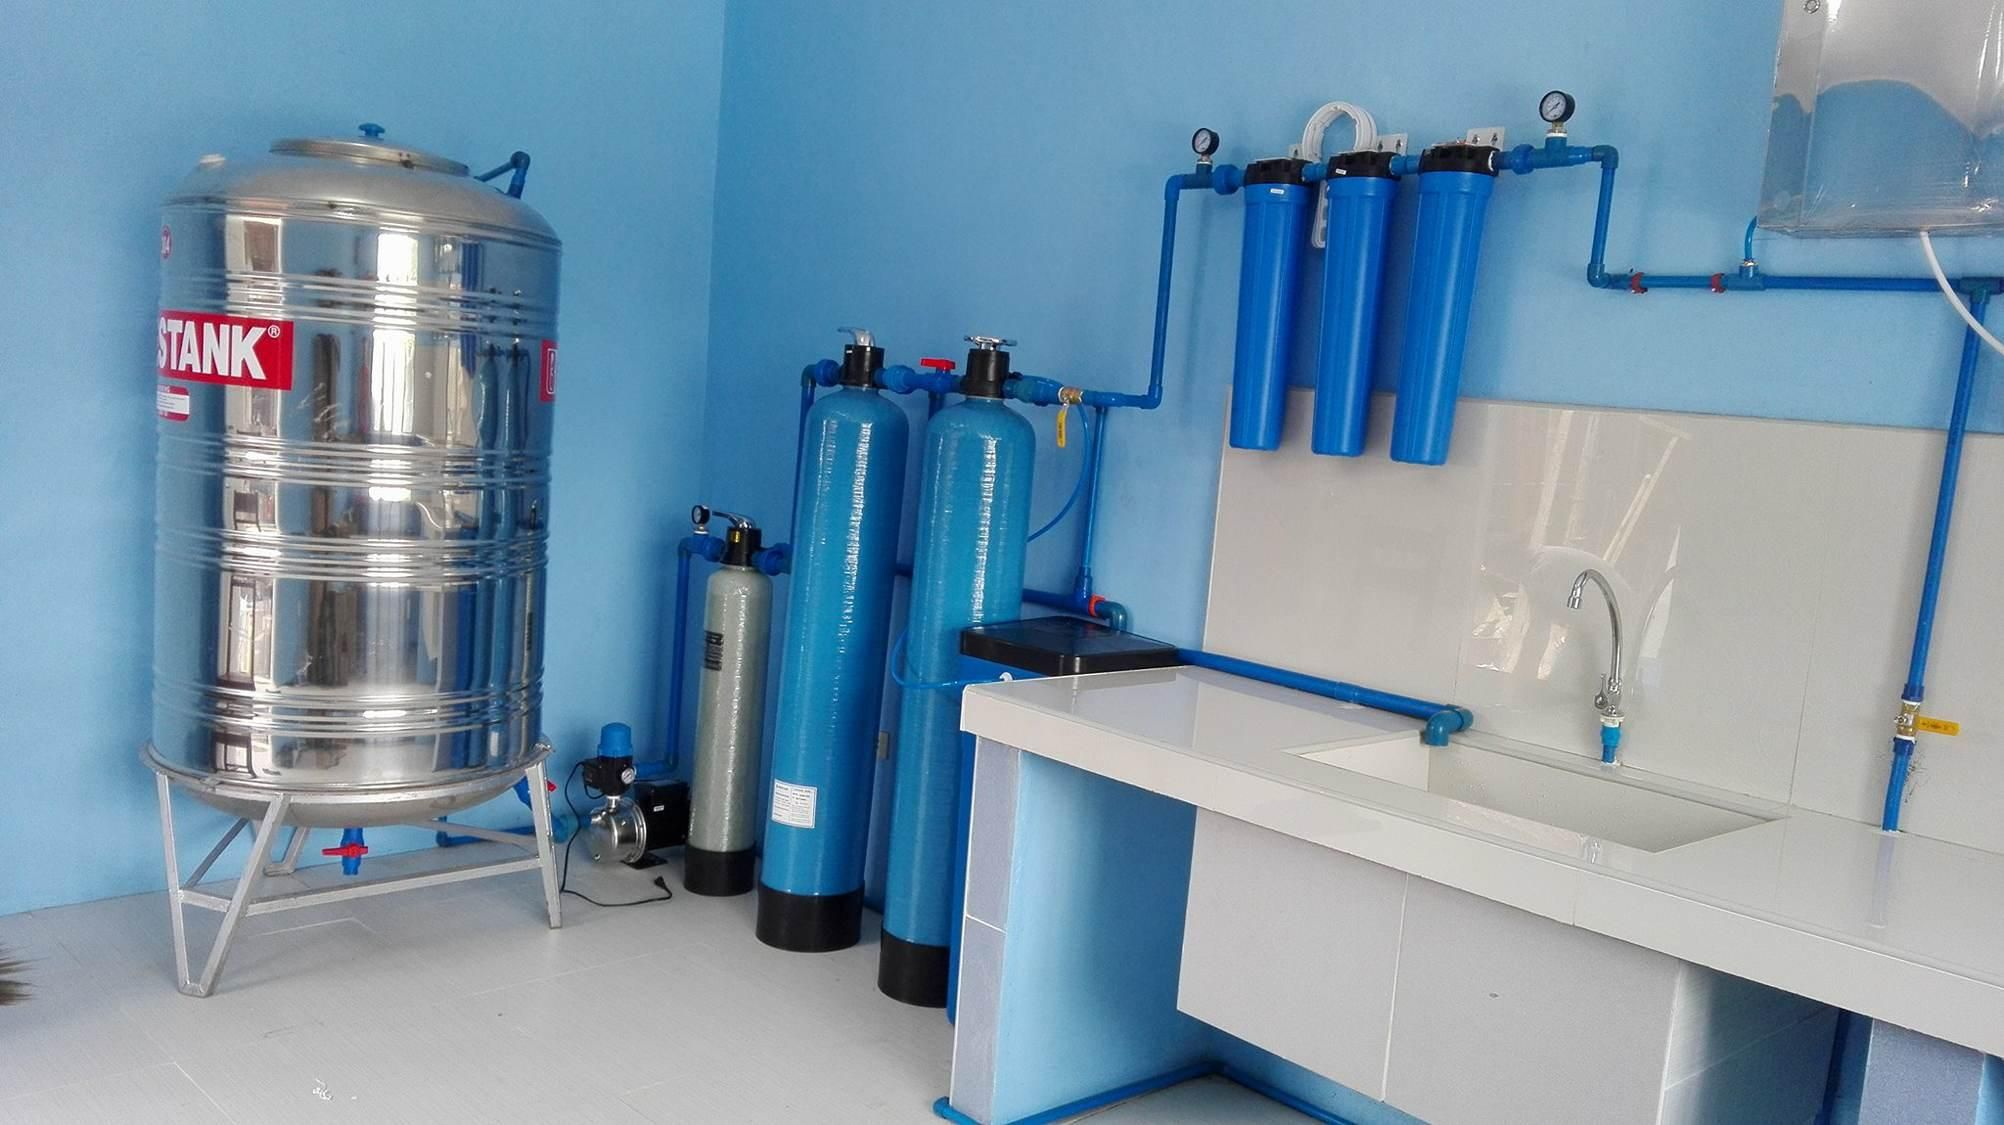 Affordable Water Refilling Station Nationwide Office Design Station Quezon